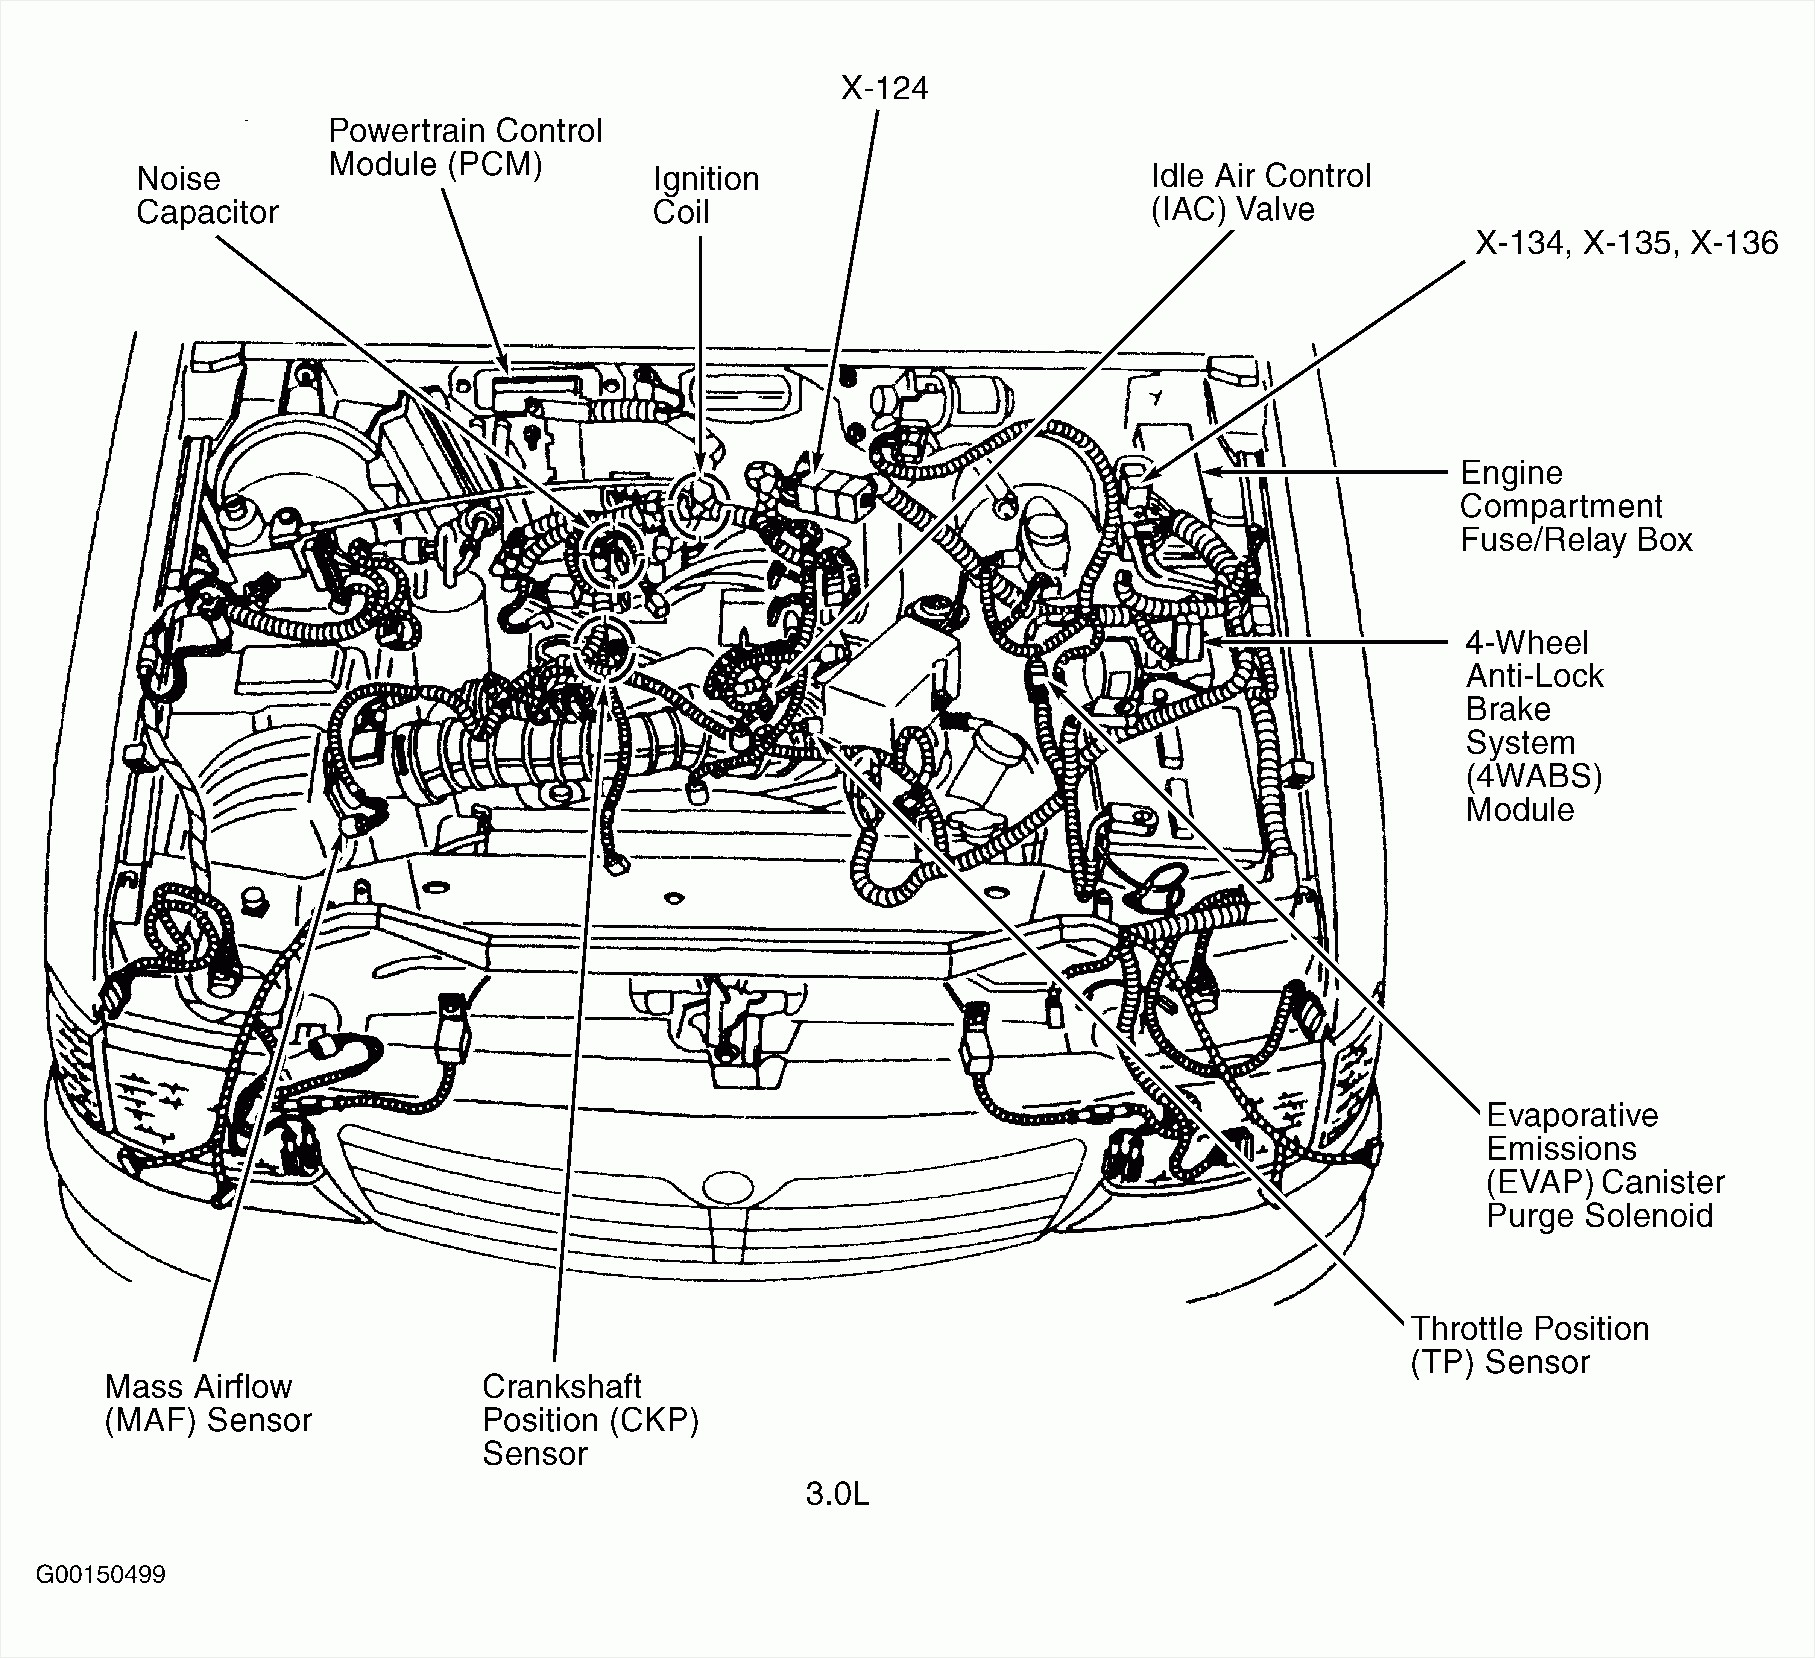 2002 DODGE DAKOTA BRAKE LIGHT WIRING DIAGRAM - Auto ...